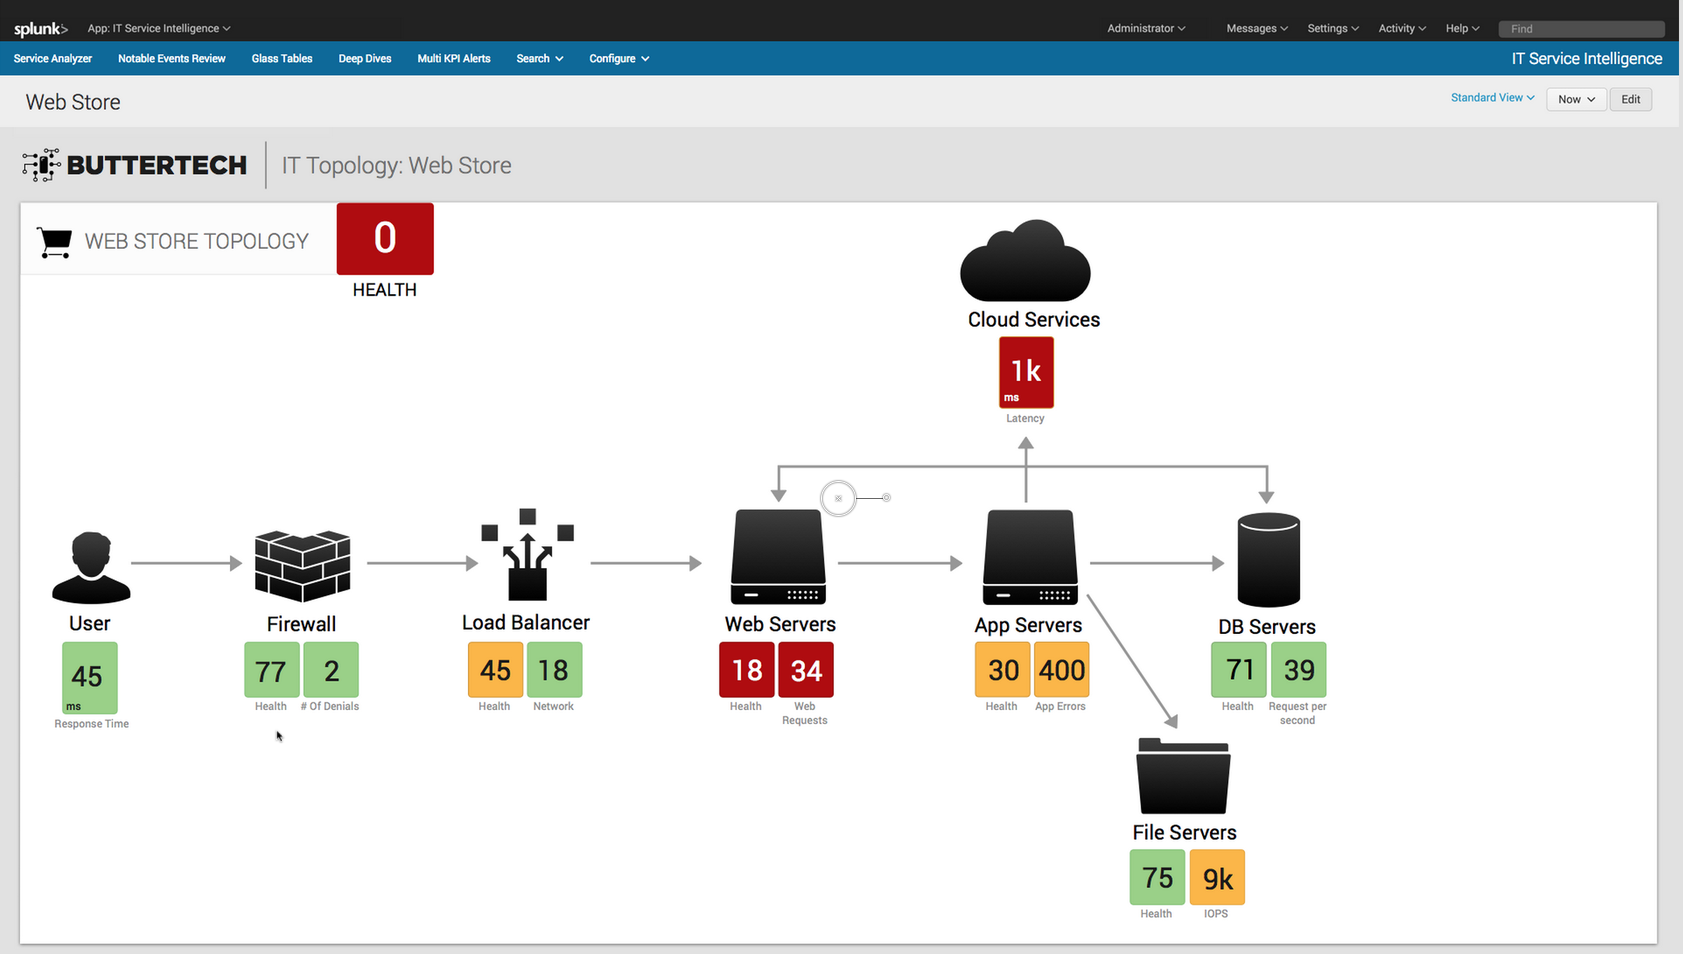 Splunk IT Service Intelligence